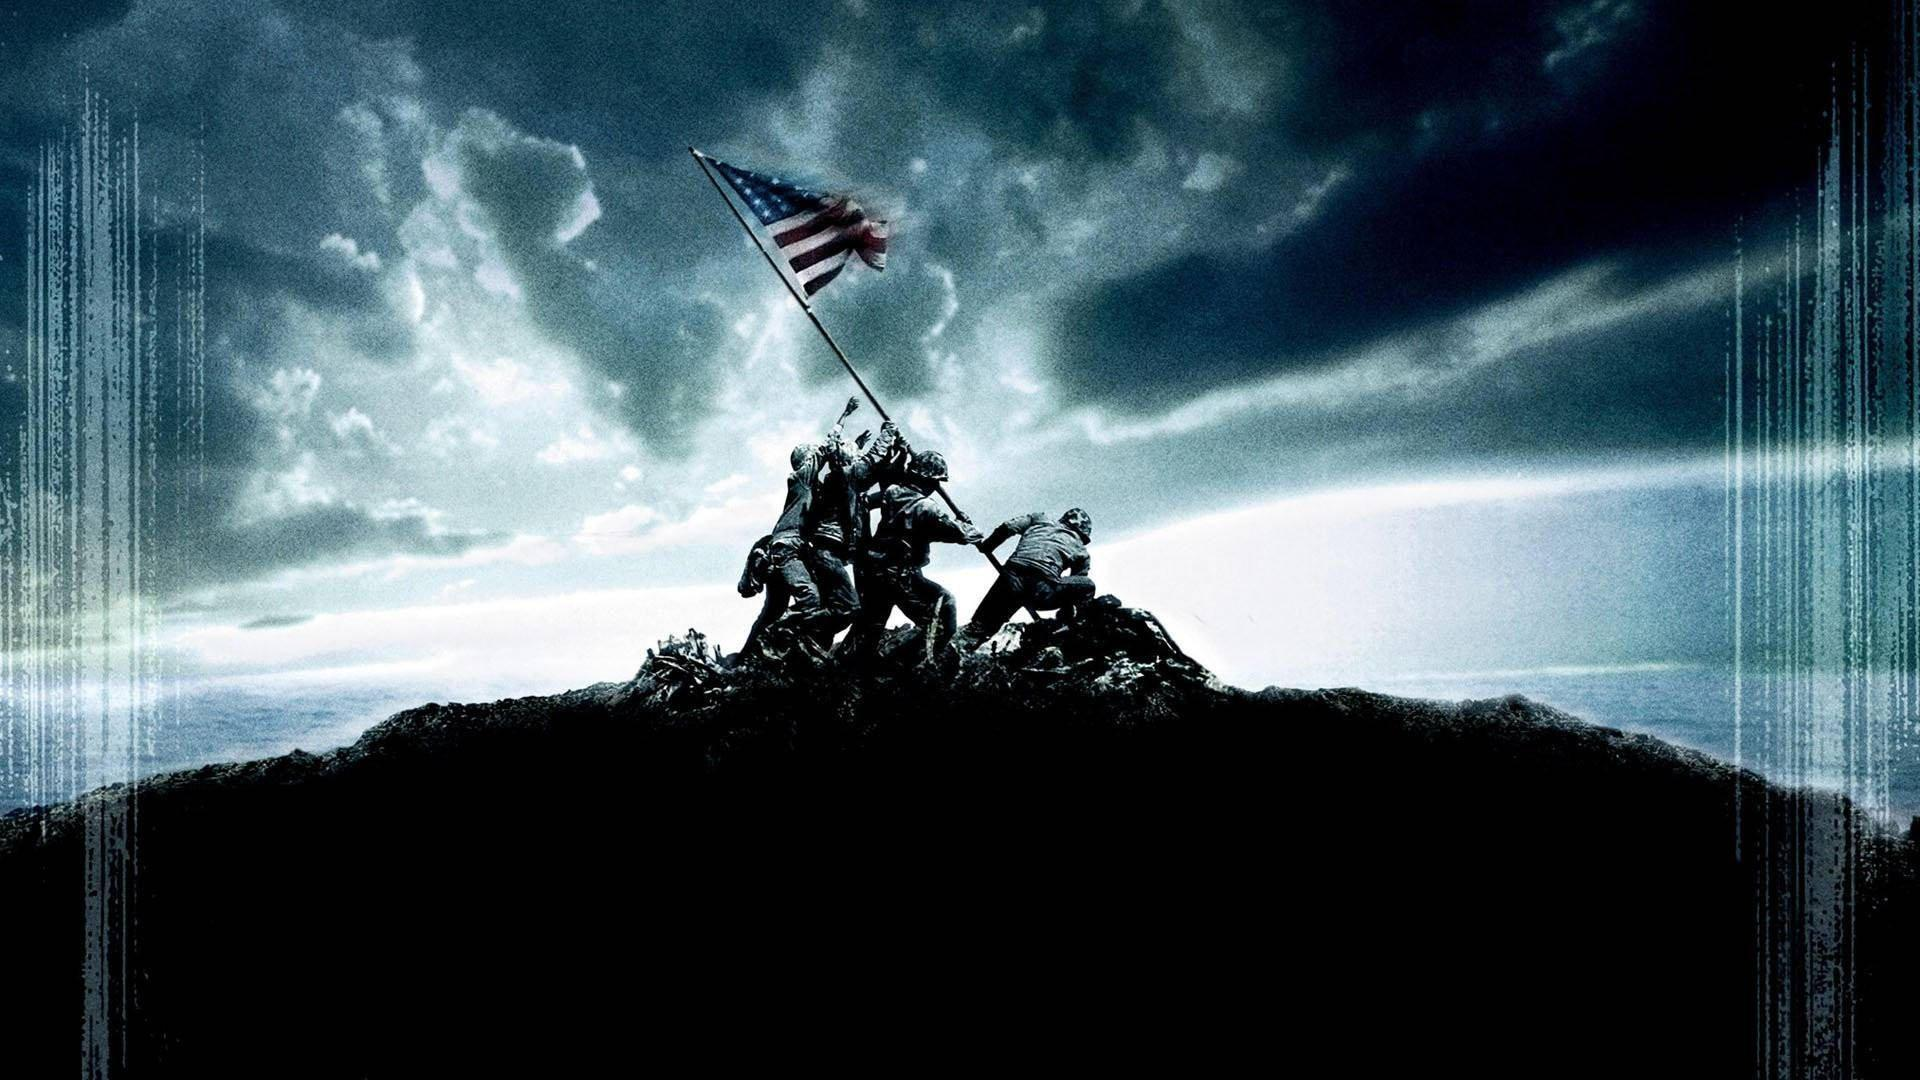 marine corps backgrounds wallpaper cave